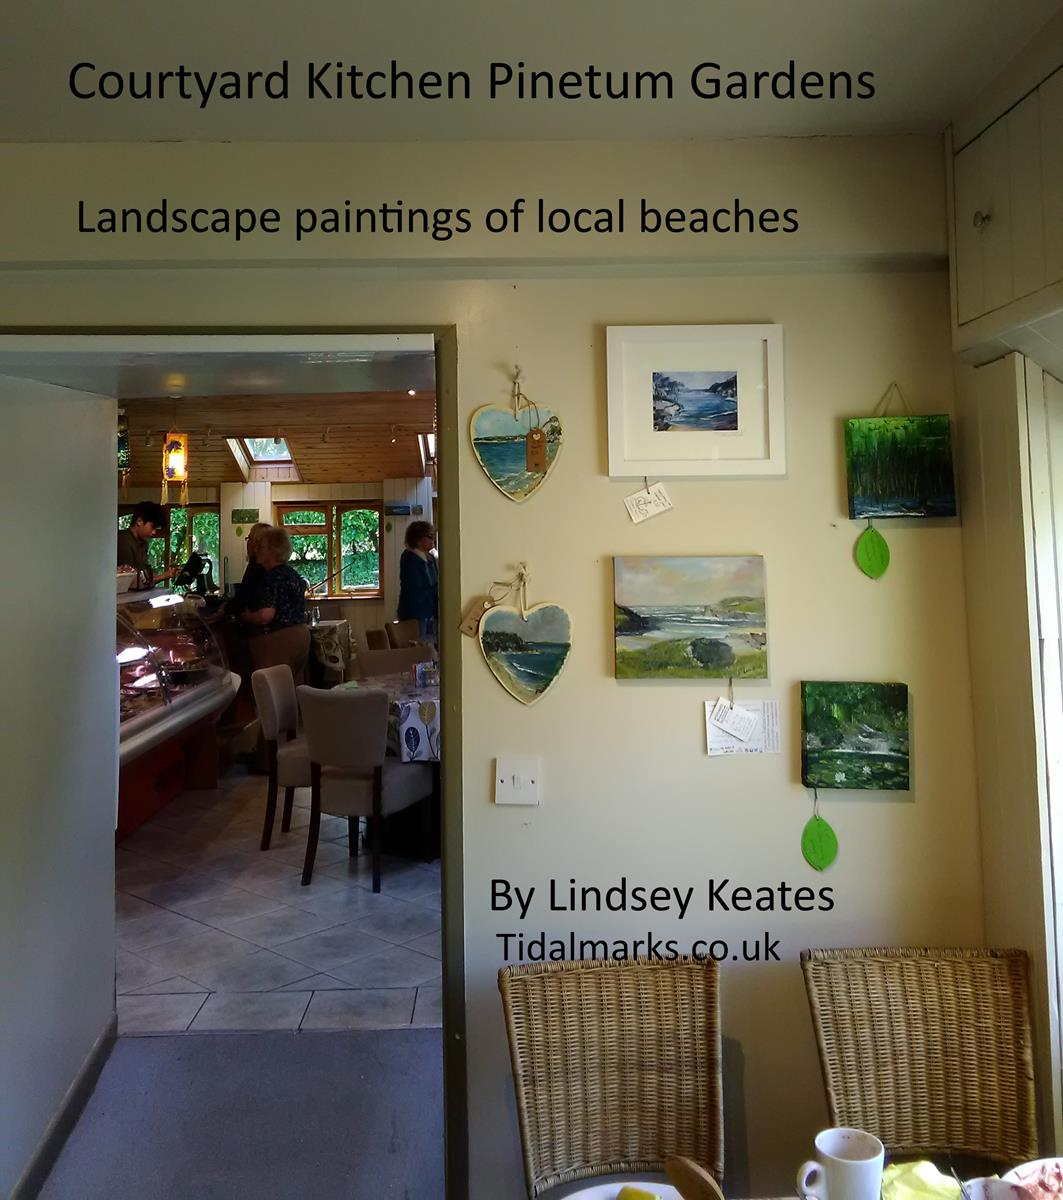 Stop By The Courtyard Kitchen For Lunch Or #icecream, See Beautiful  #Landscape #paintings U0026 #artprints Of #parbay #readymoneycove #polkerris  #menabilly ...